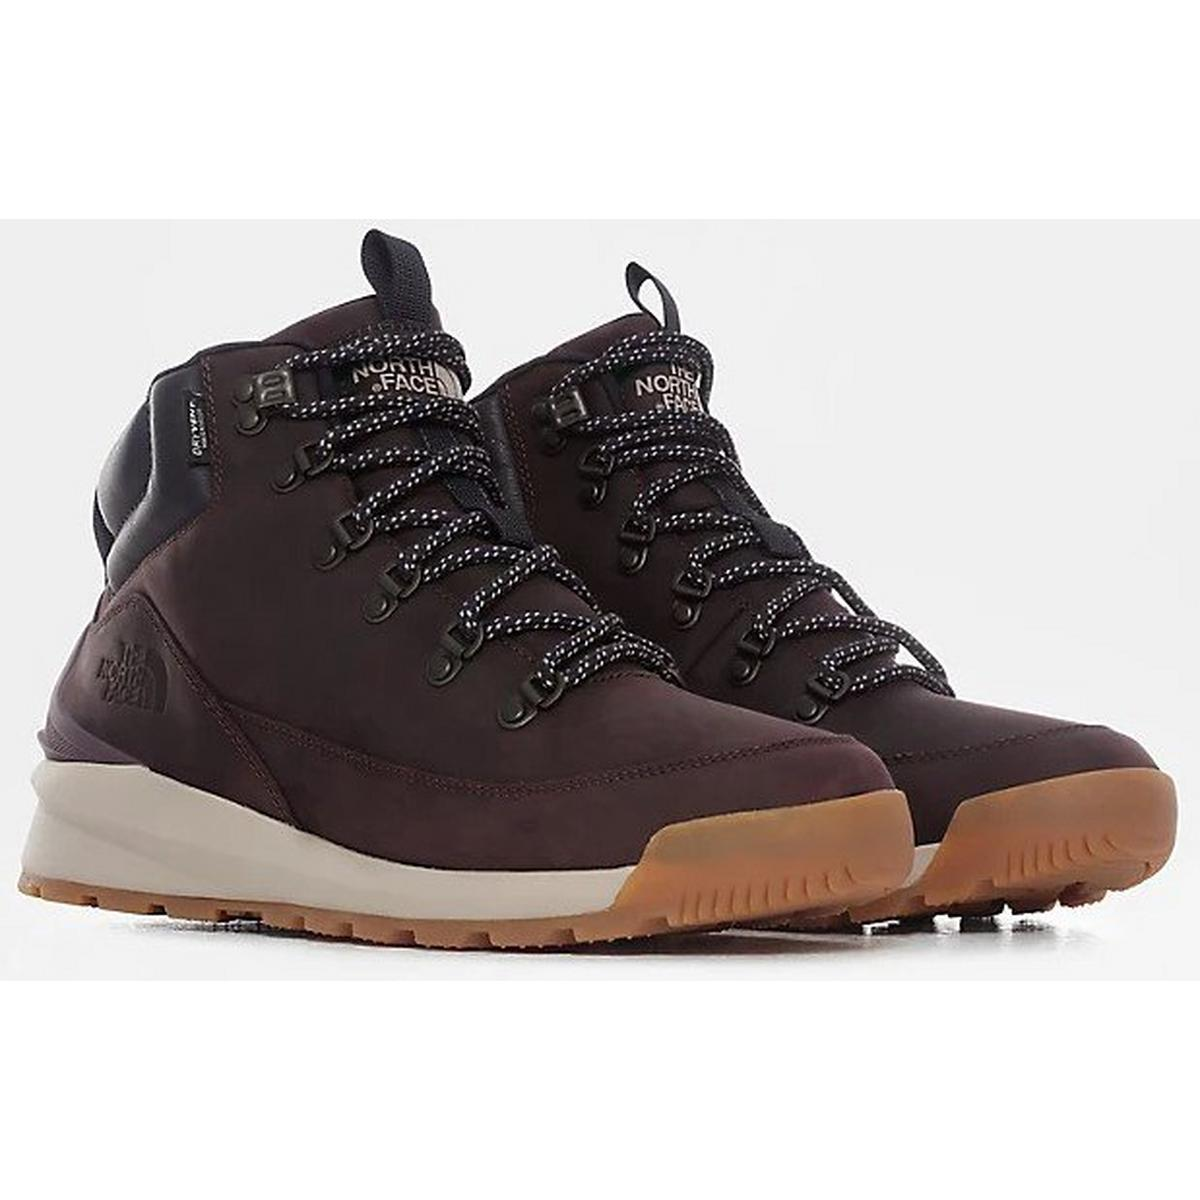 The North Face Men's Back-to-Berkeley Mid Waterproof Boots - Brown